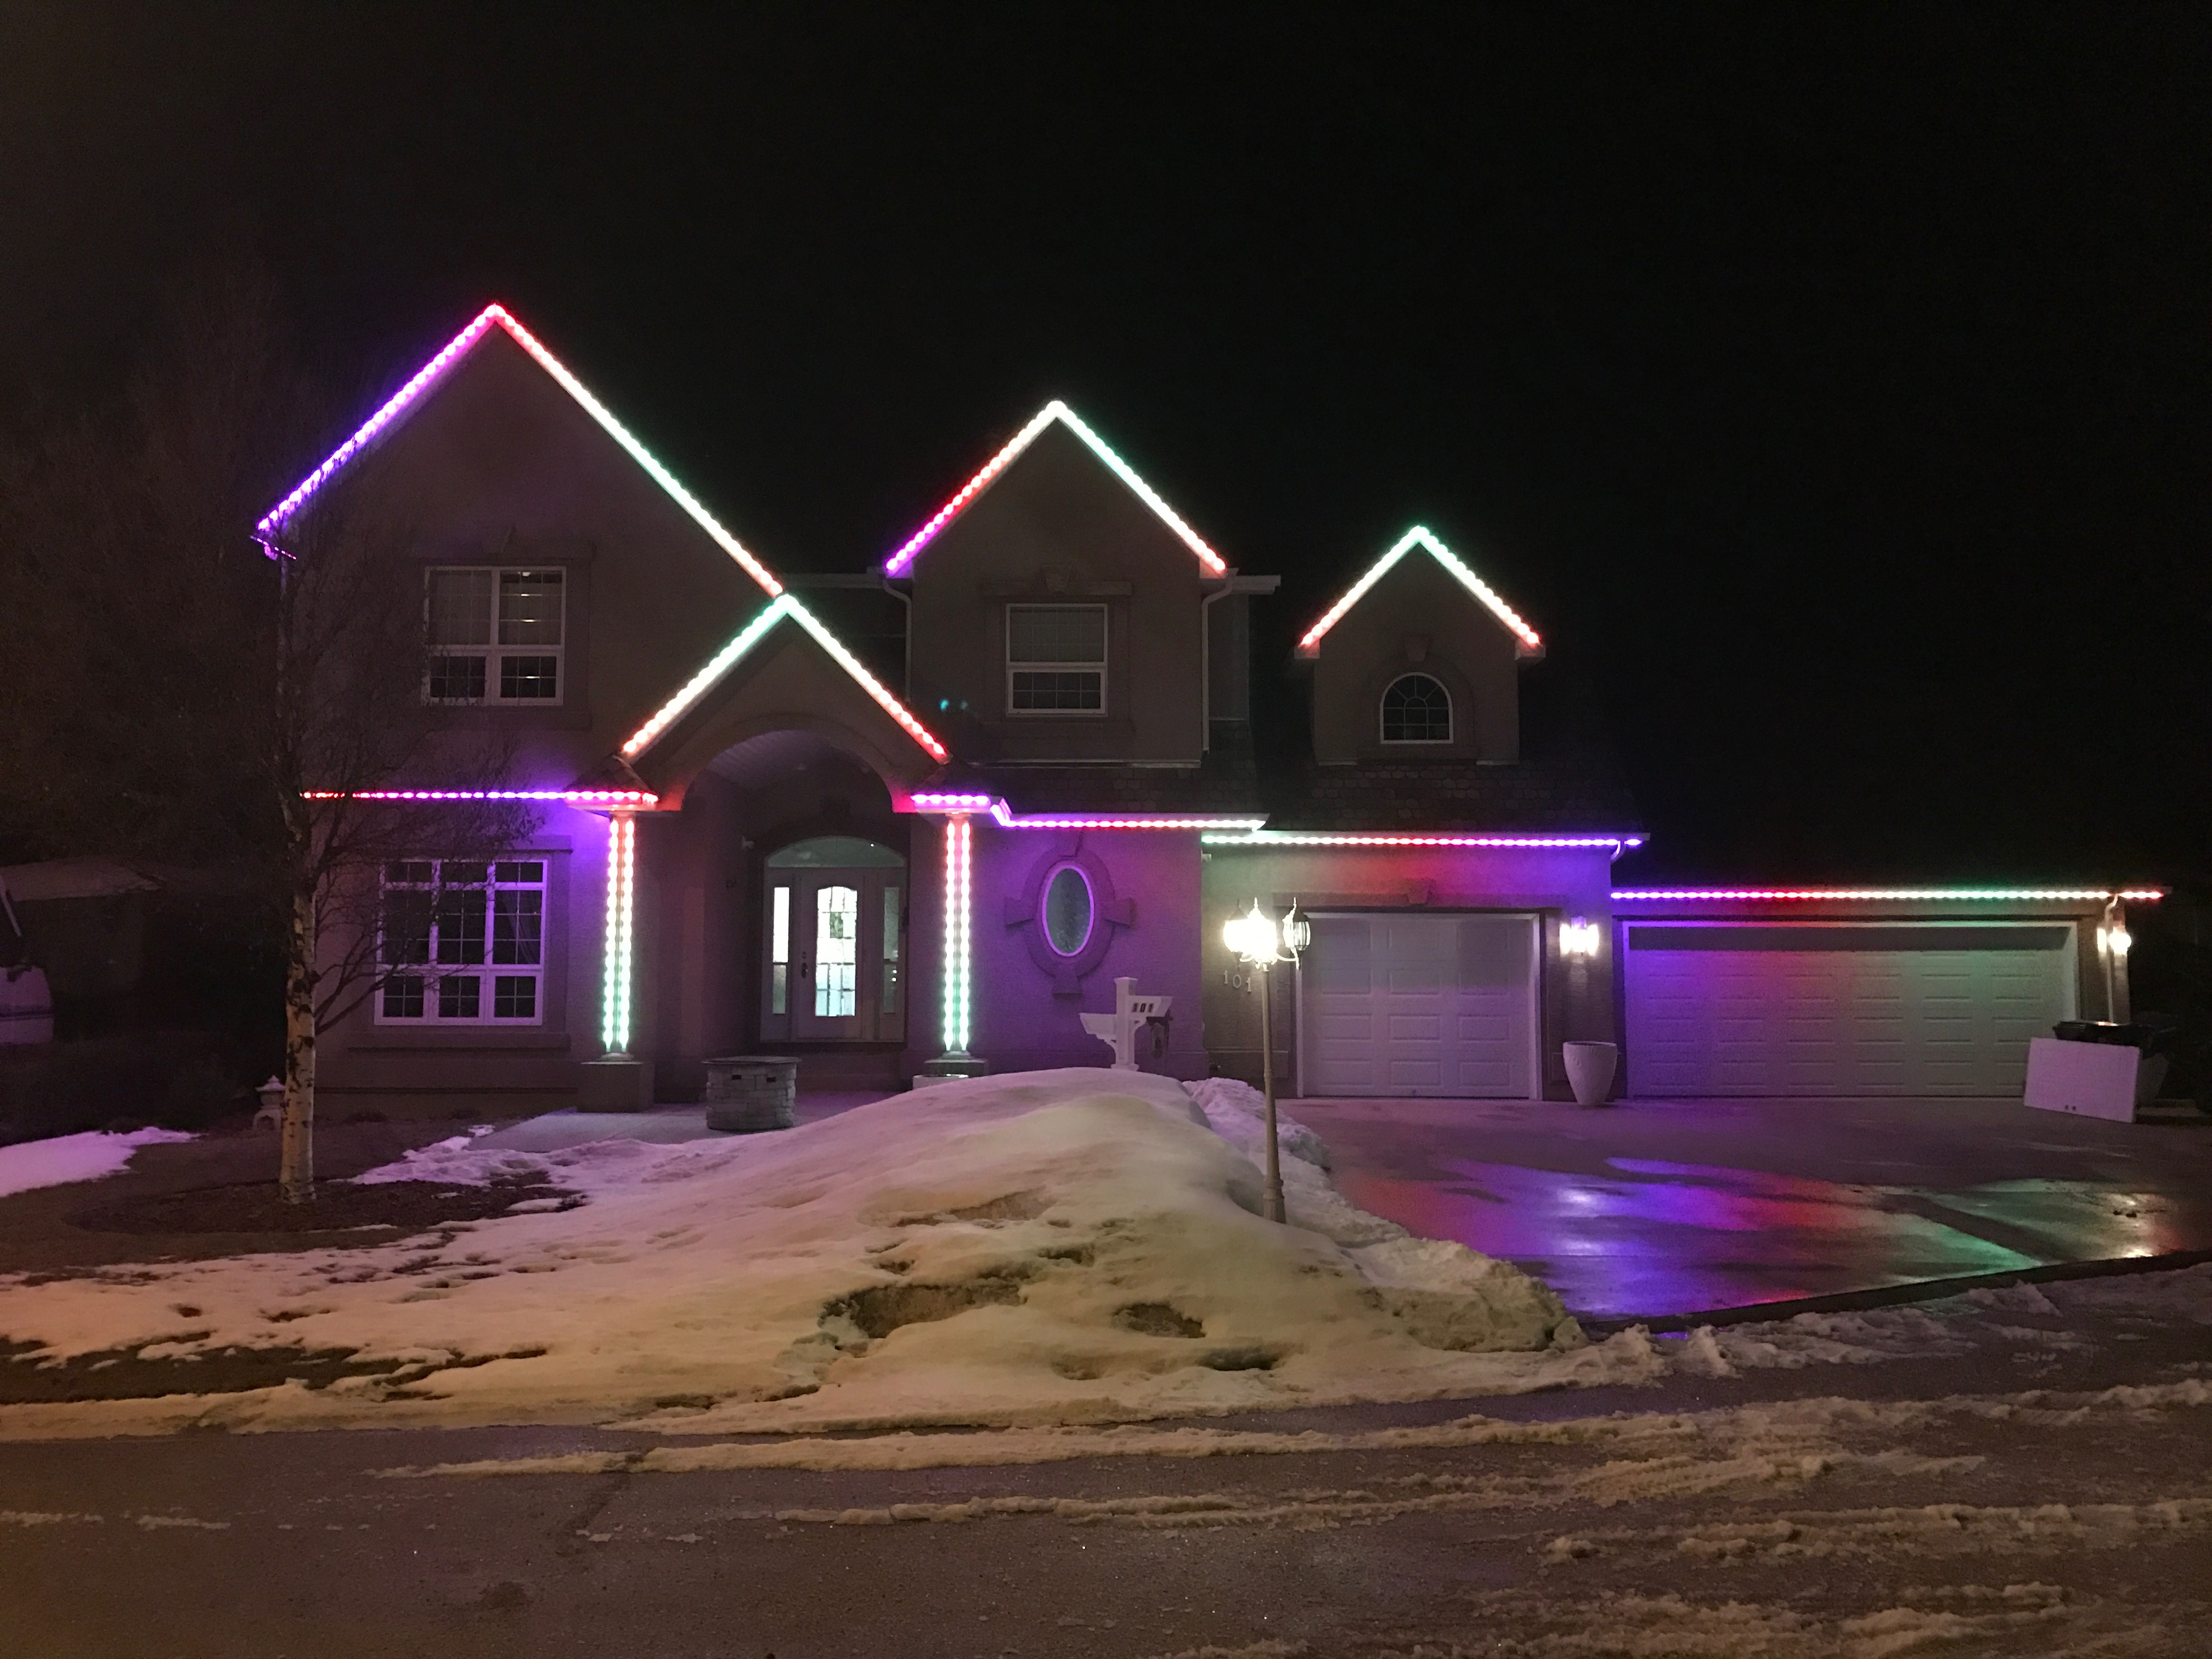 Permanent Outdoor LED Strip Christmas Lighting Up Toronto Homes With  Convenience Permanentoutdoorledstripchristmaslightingtoronto.com